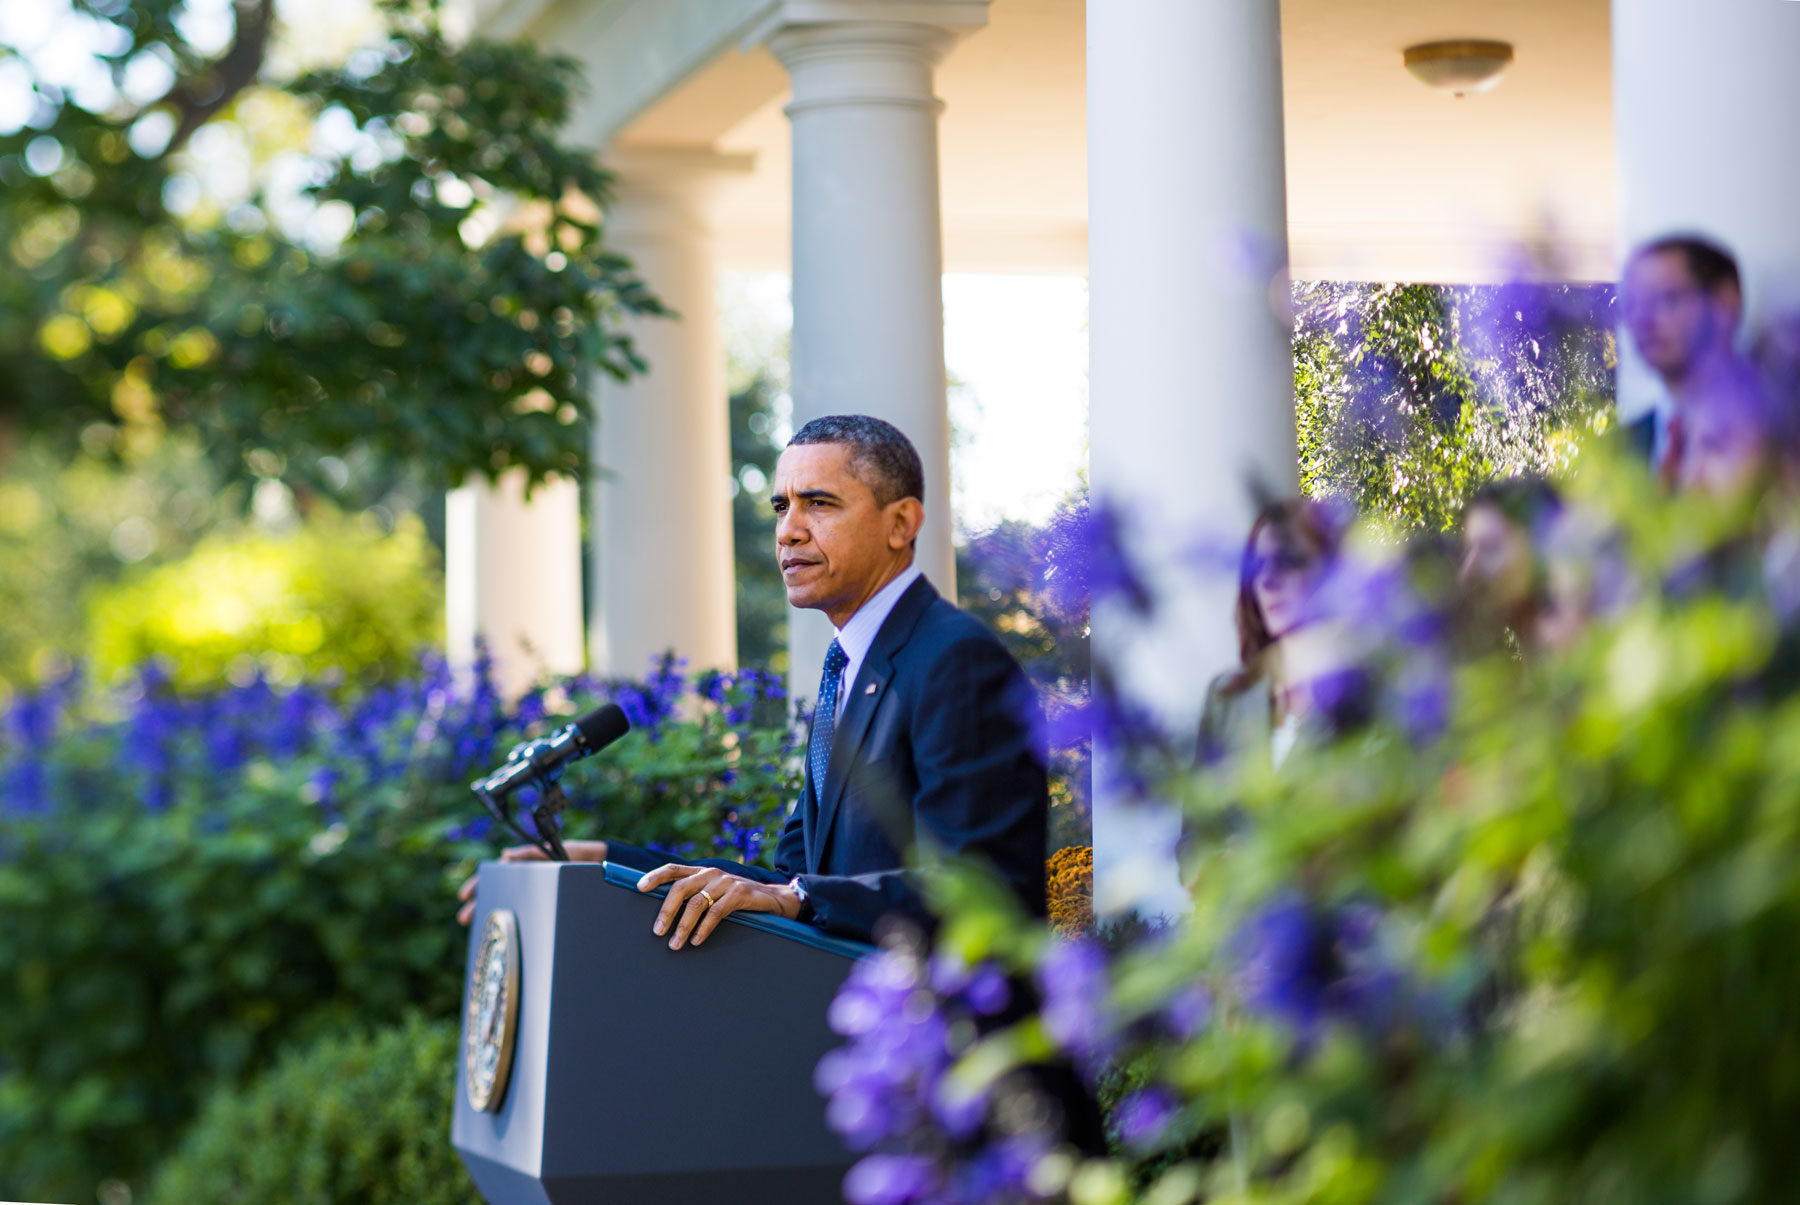 The President speaks about the Affordable                     Care Act from the Rose Garden.